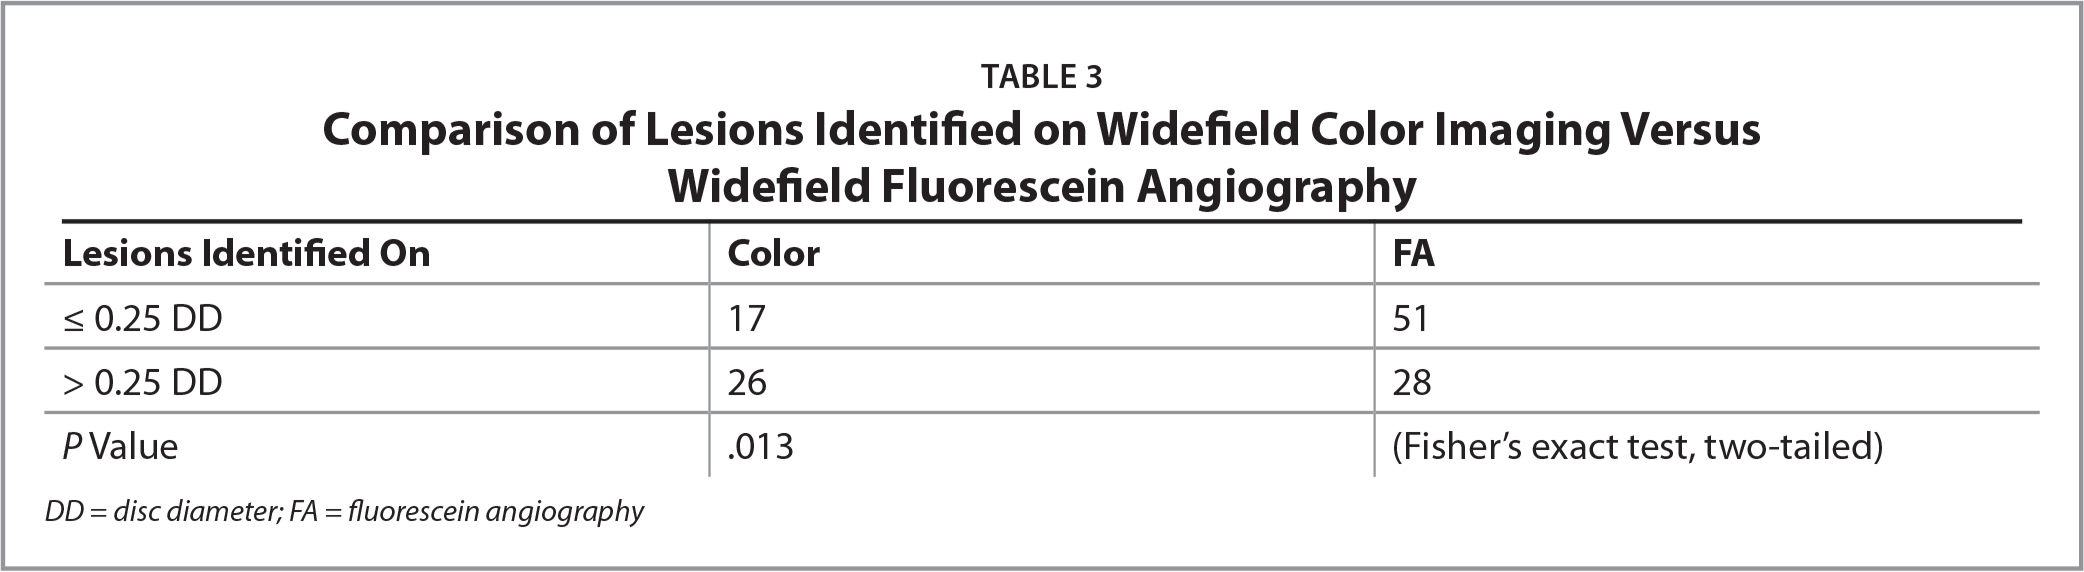 Comparison of Lesions Identified on Widefield Color Imaging VersusWidefield Fluorescein Angiography